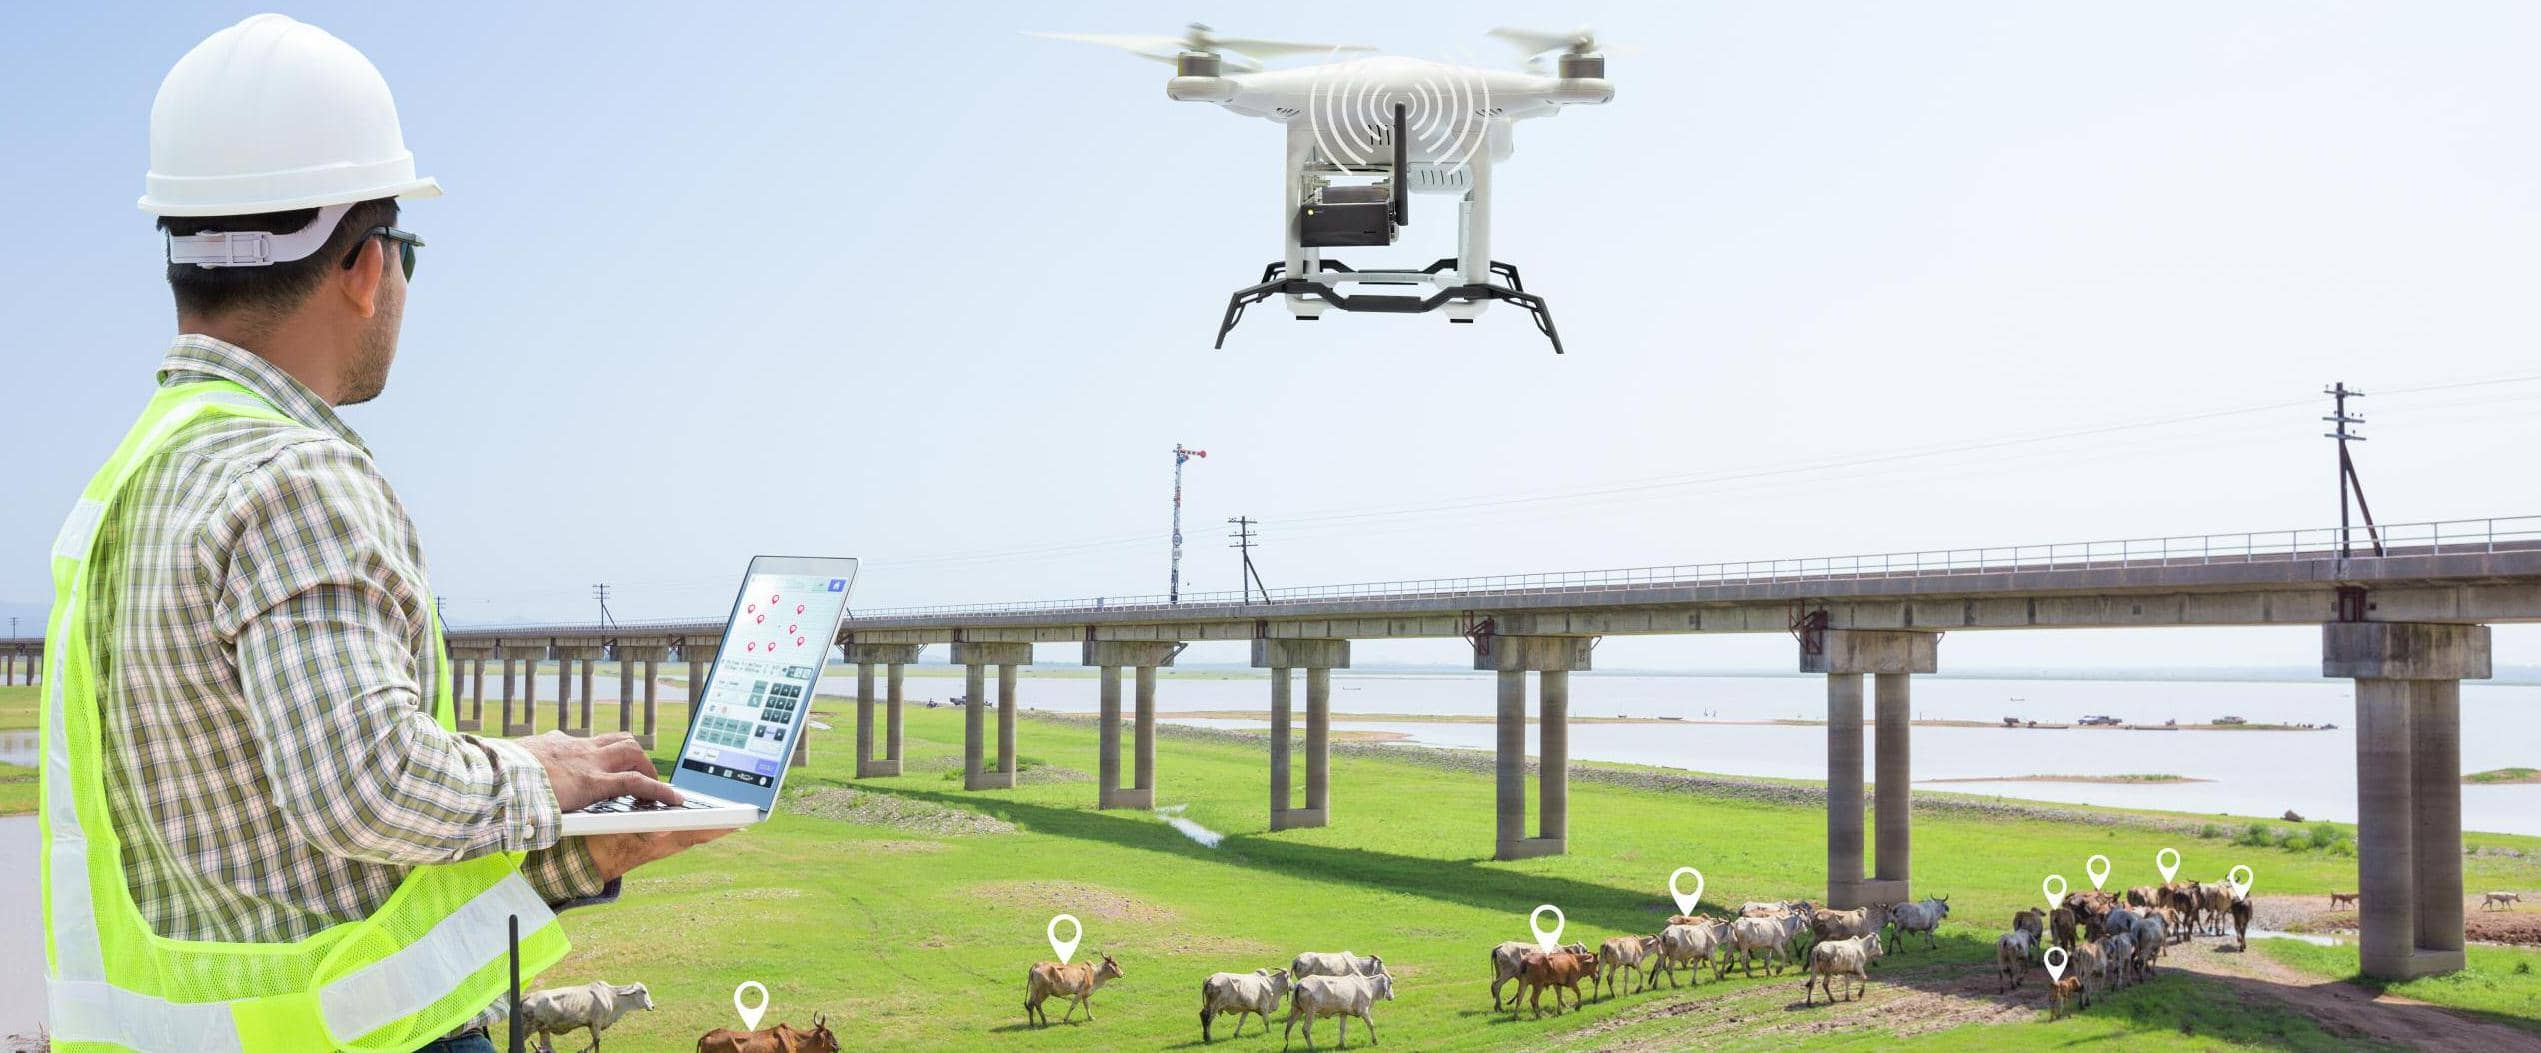 Unmanned Aerial Vehicles (UAVs) – A Bird's-Eye View In Agriculture